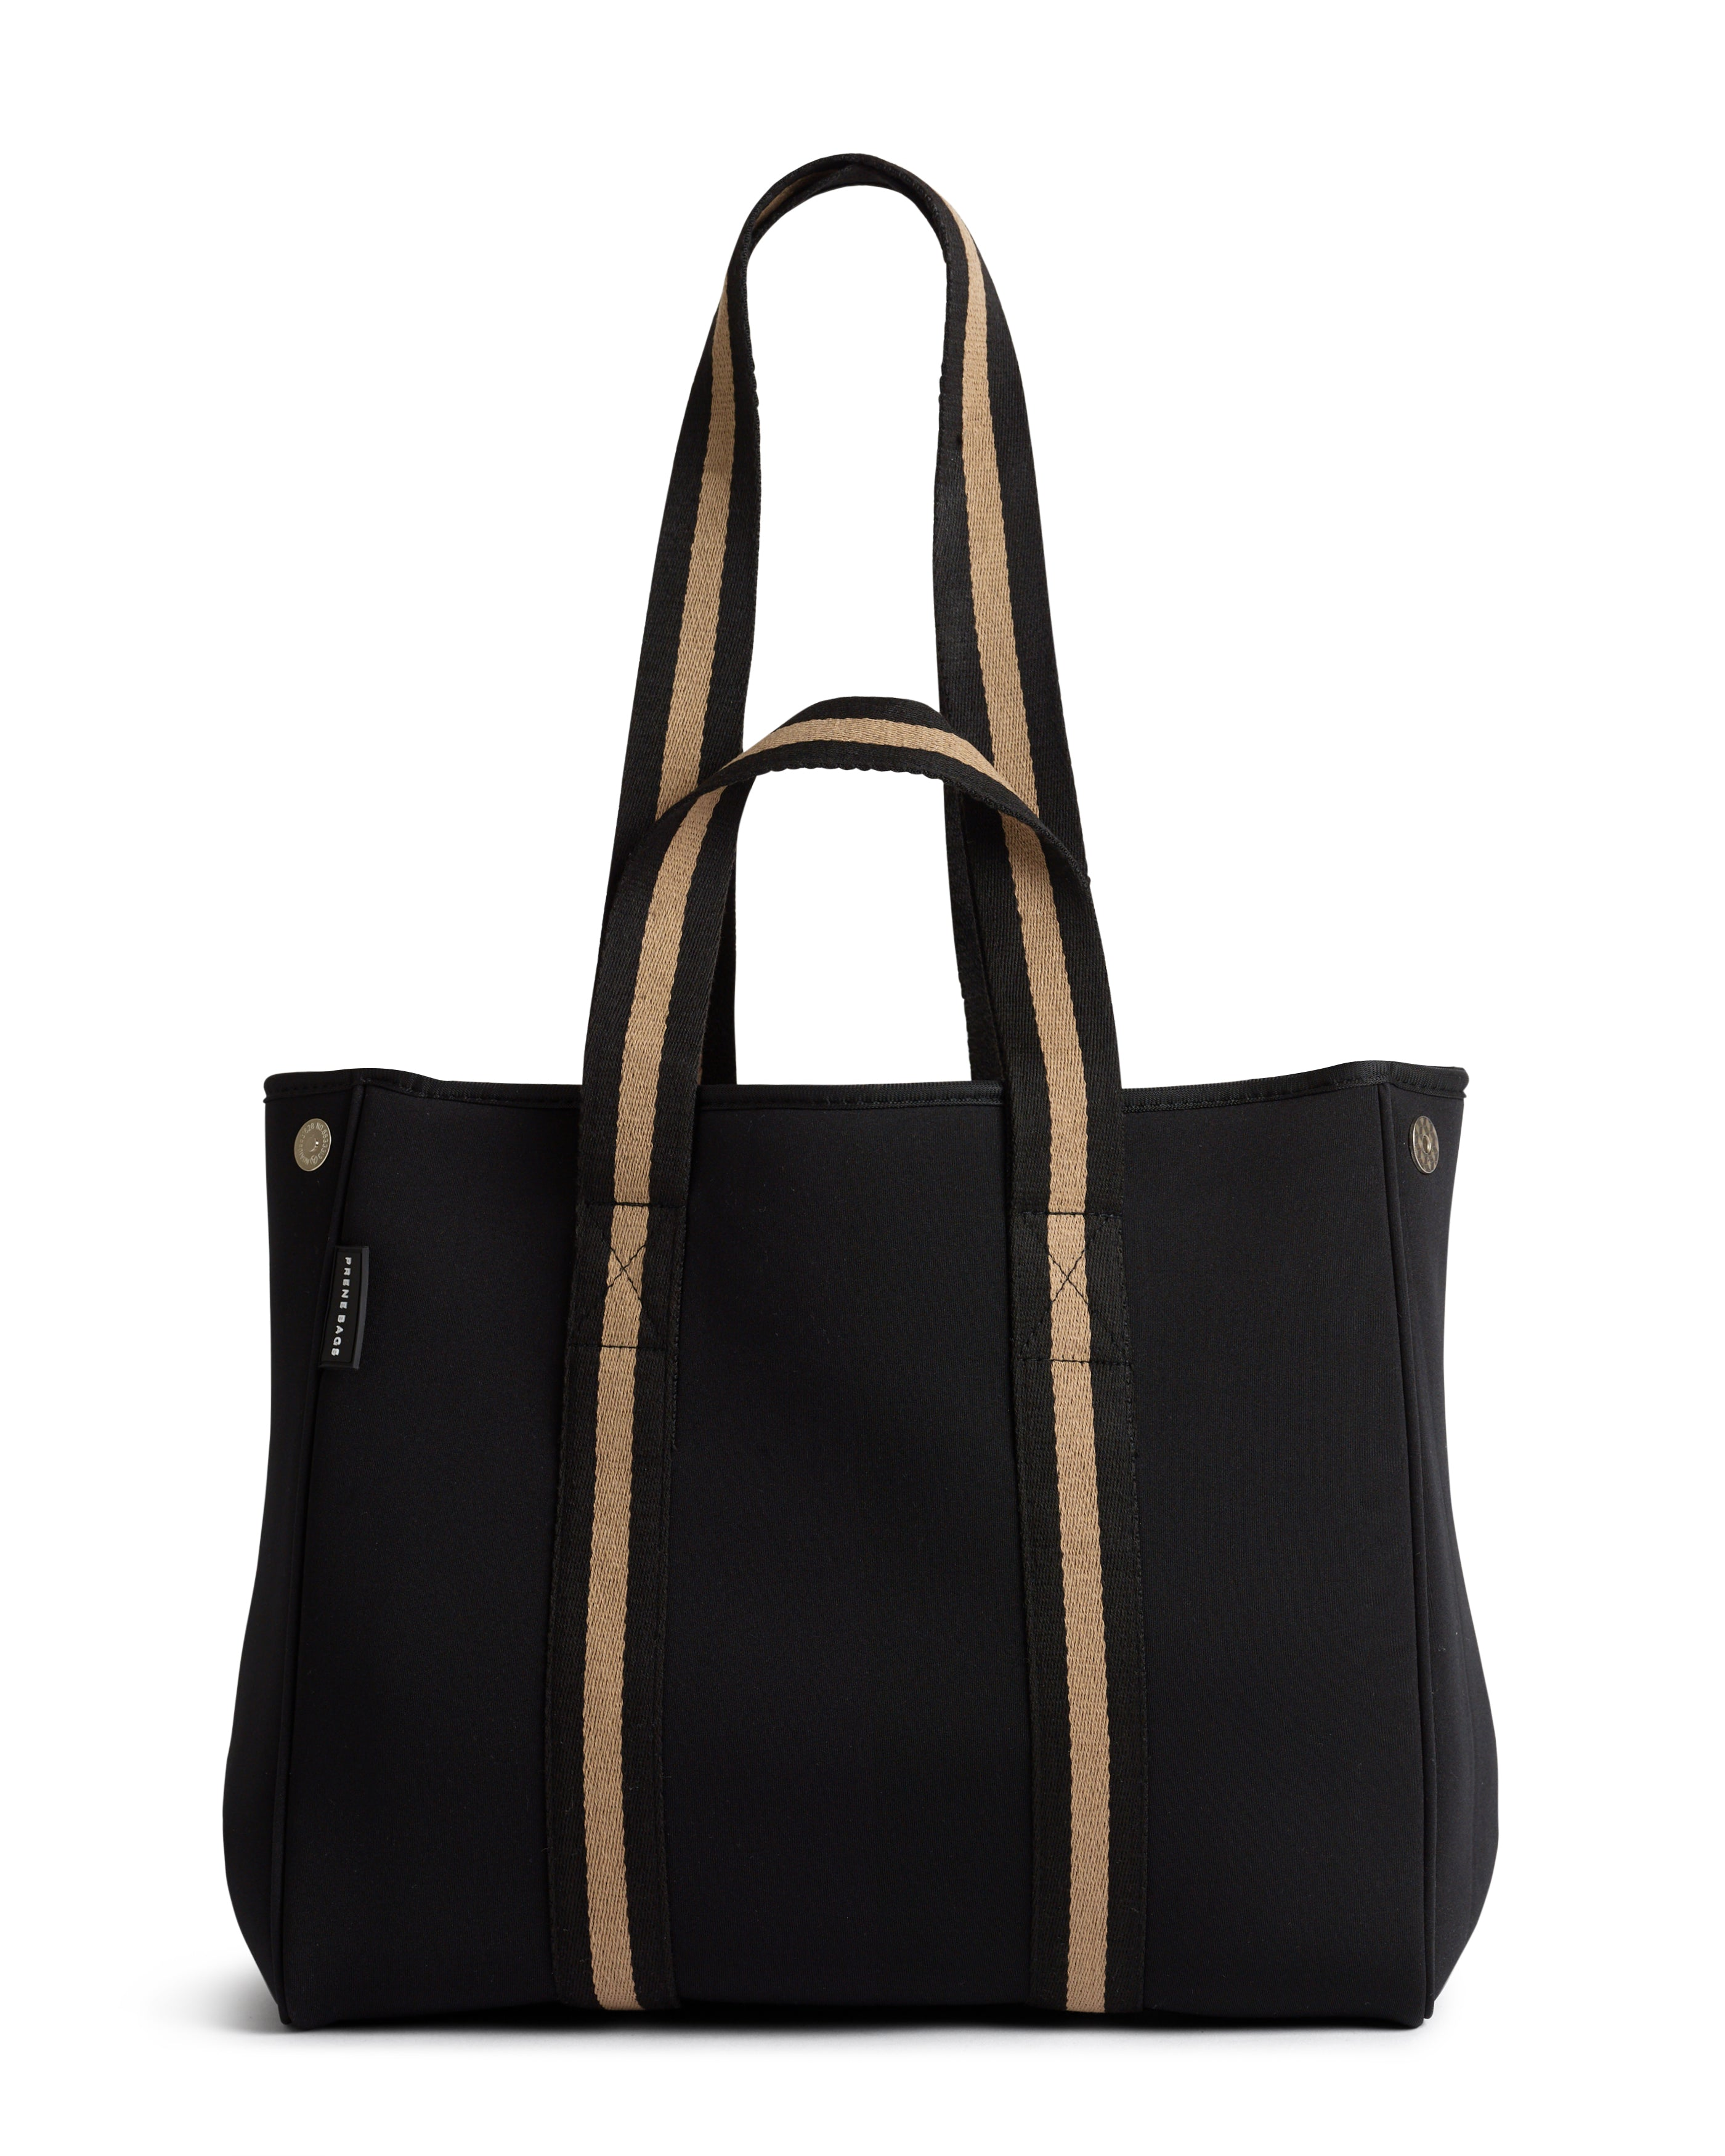 THE GIGI BAG (BLACK/BEIGE)